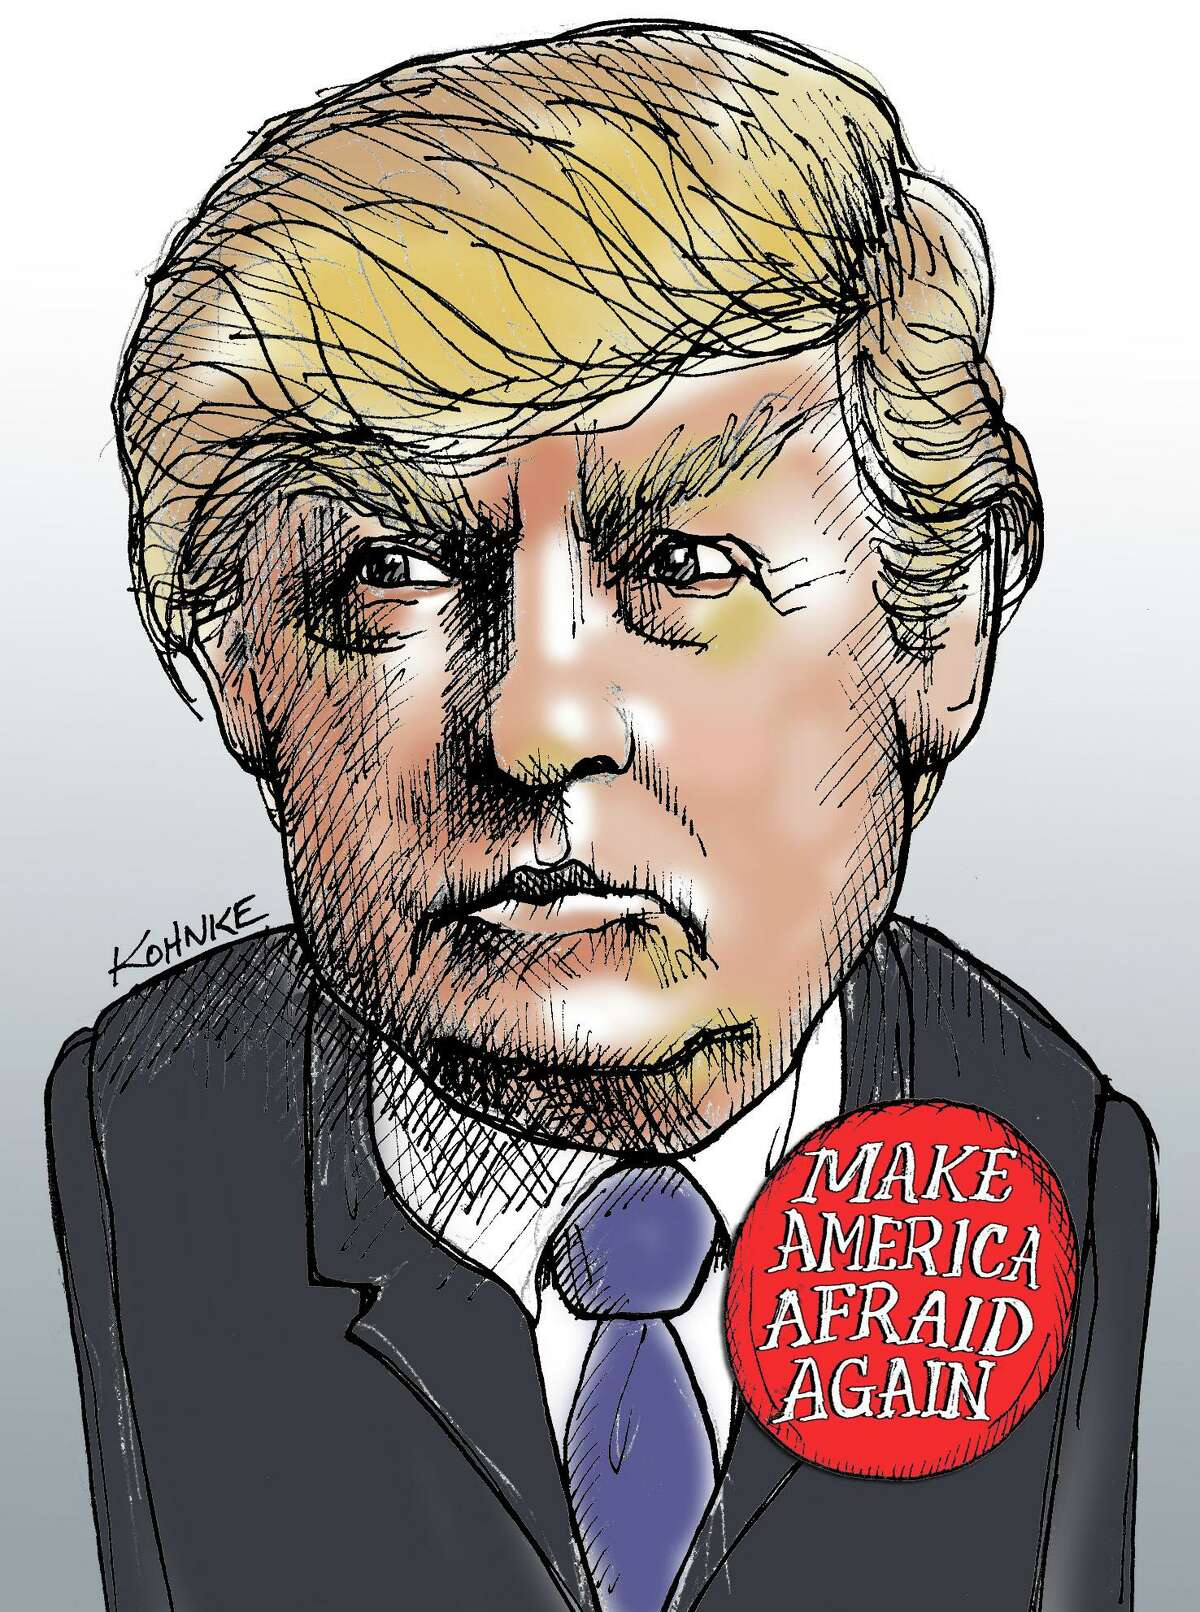 This artwork by Jennifer Kohnke refers to GOP candidate Donald Trumps promotion of fear in the country.